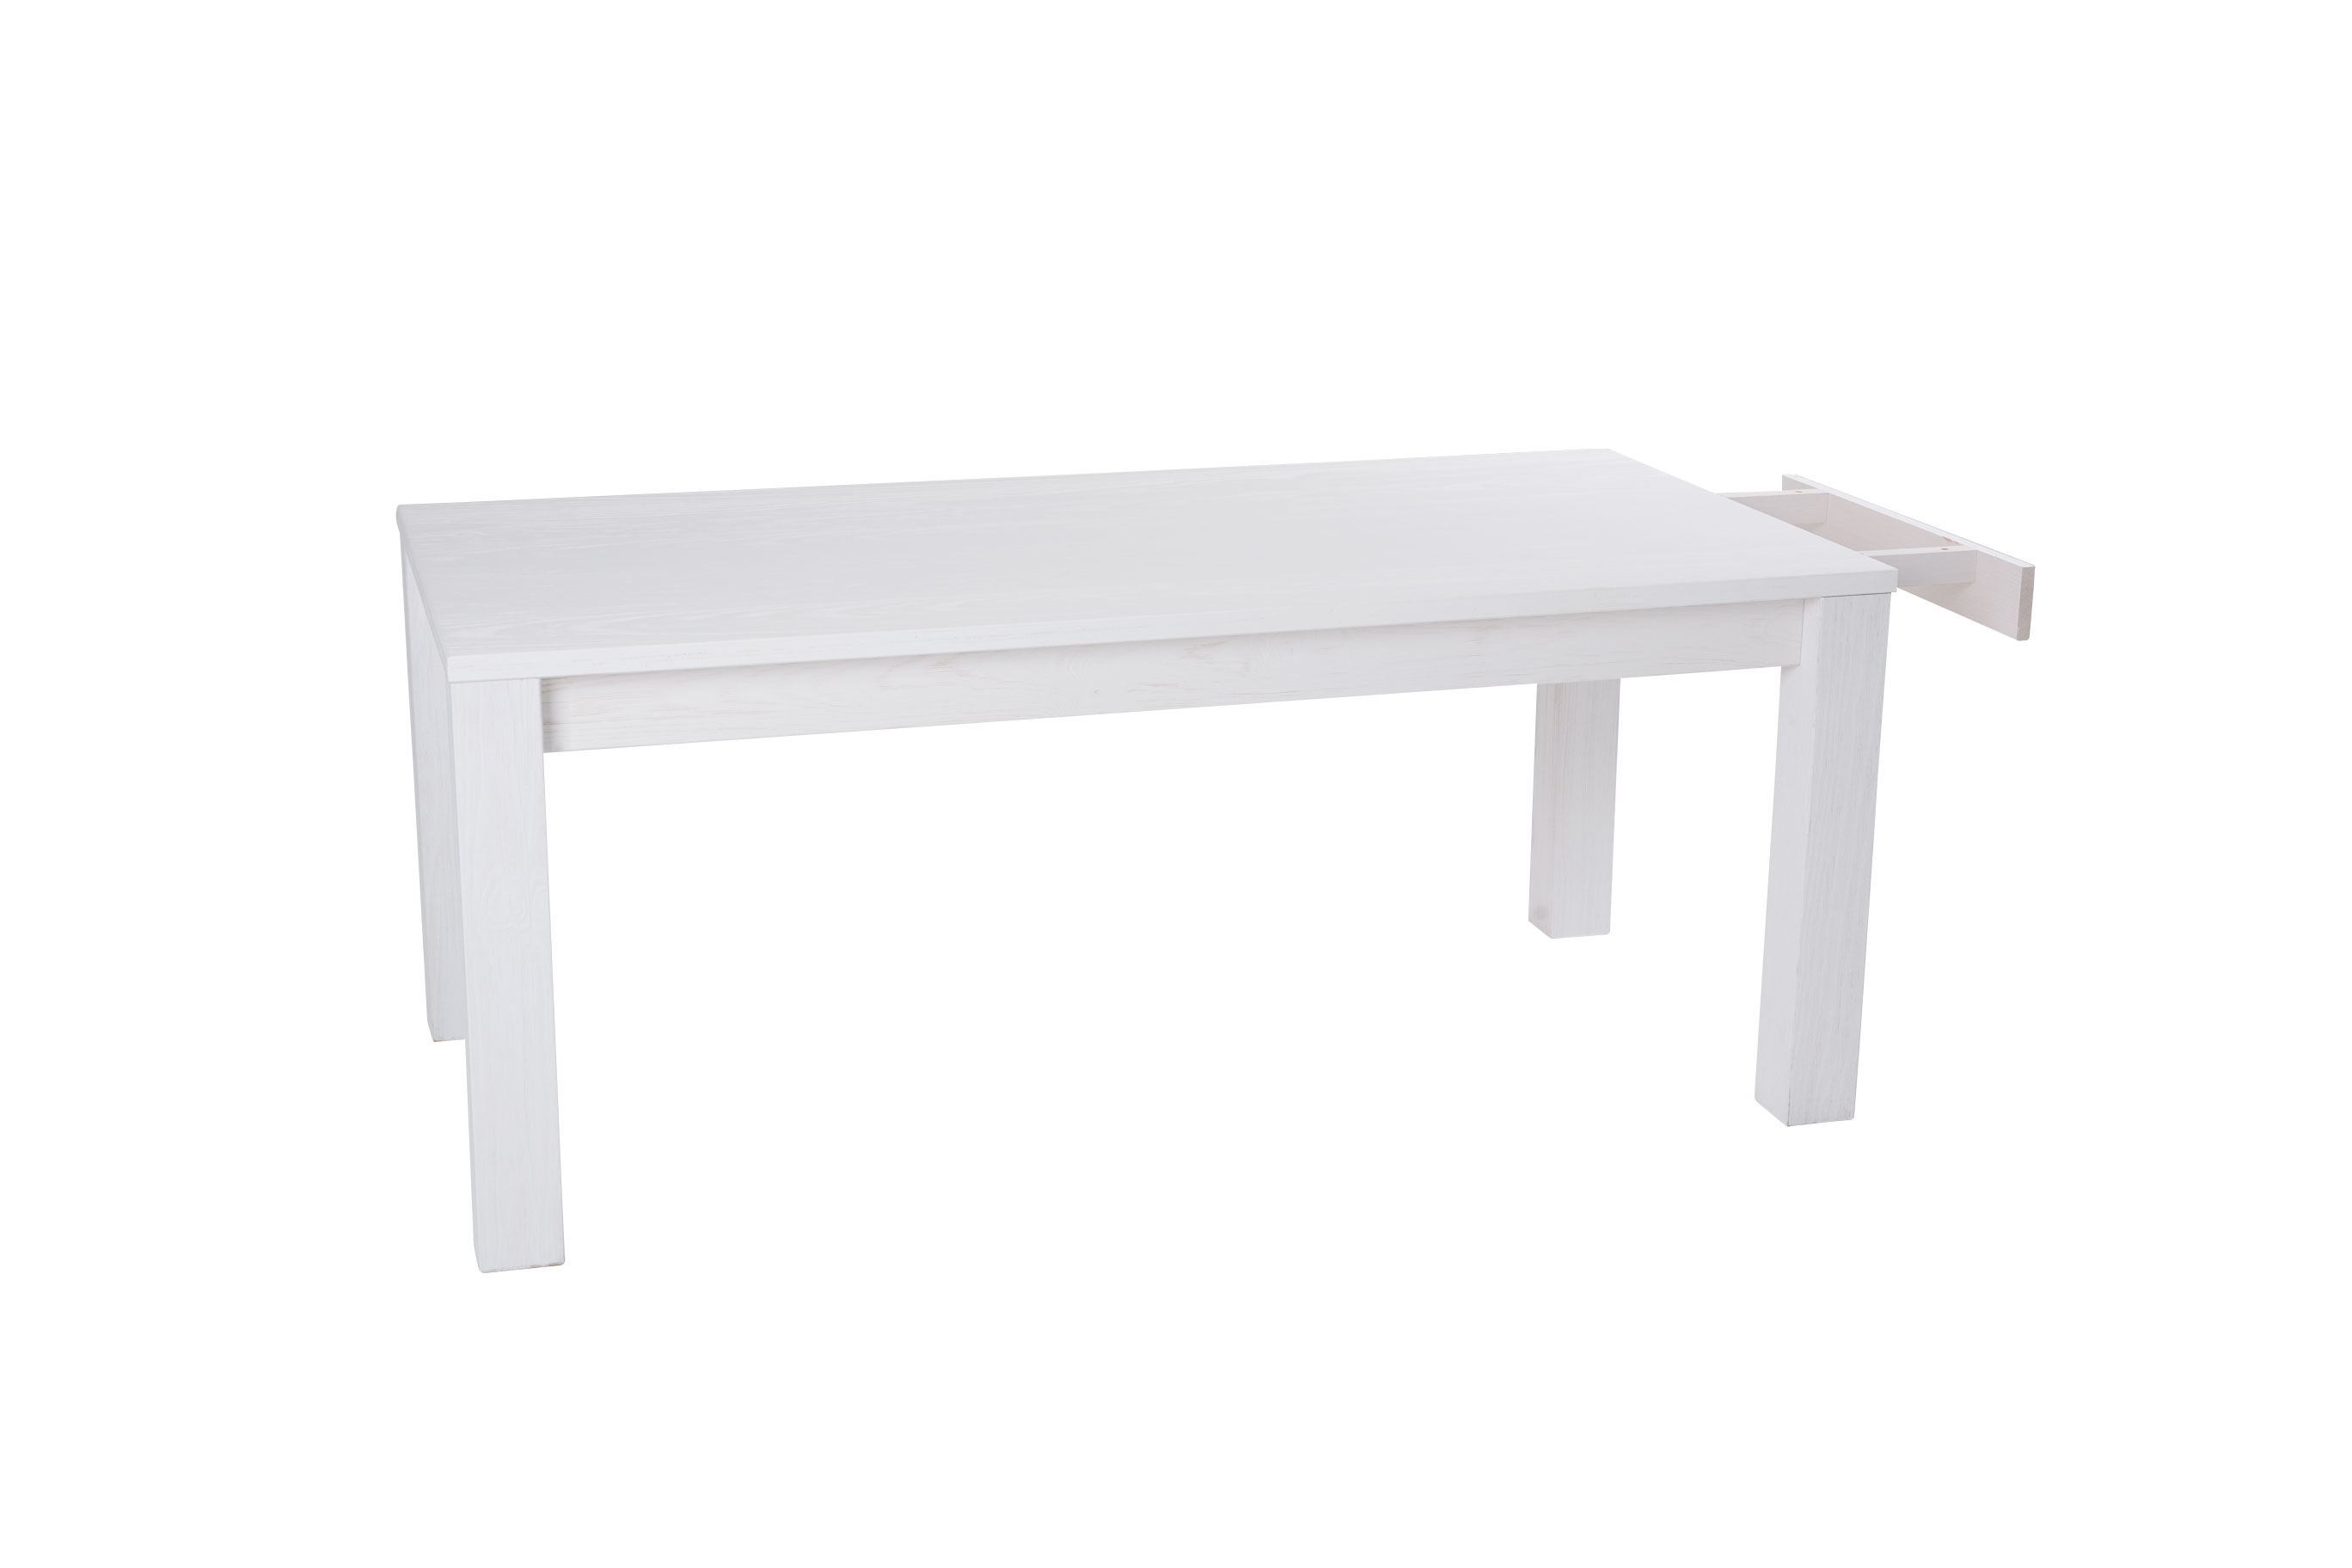 table de s jour rectangulaire en pin massif laqu e blanc tble akopmlq sm vente de meubles et d. Black Bedroom Furniture Sets. Home Design Ideas